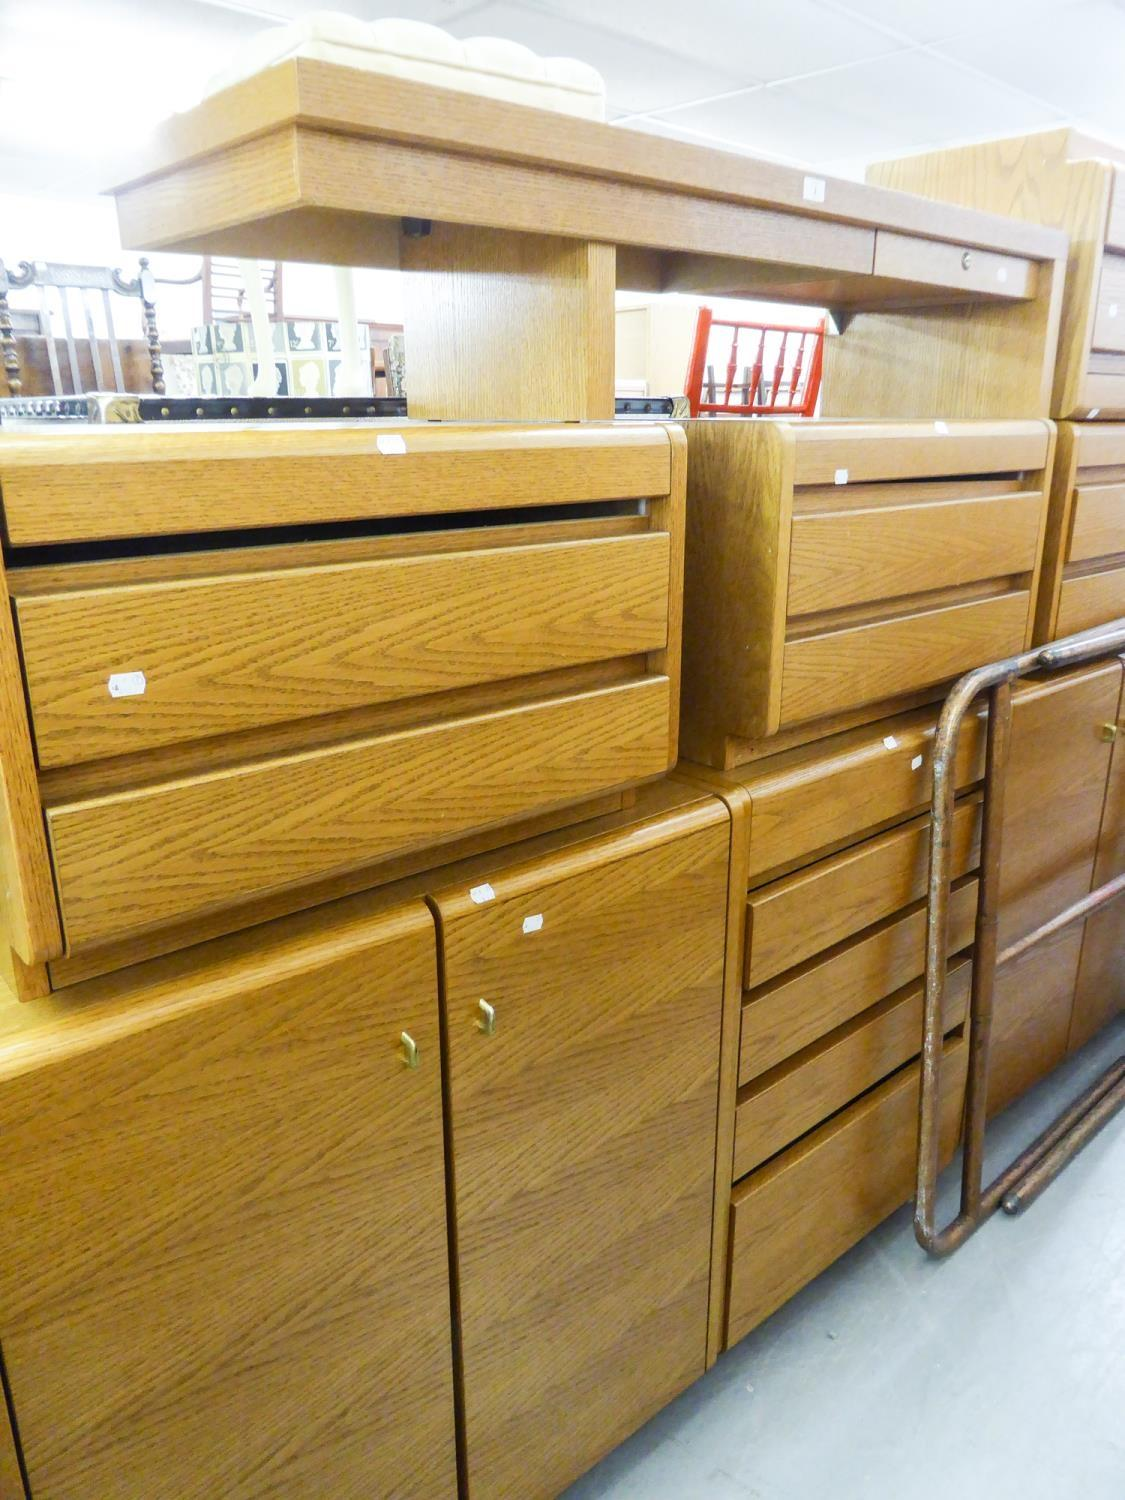 GOOD QUANITY 'MOSER' LIGHT OAK BEDROOM FURNITURE TO INCLUDE; A TWO DOOR CUPBOARD, A CORNER UNIT WITH